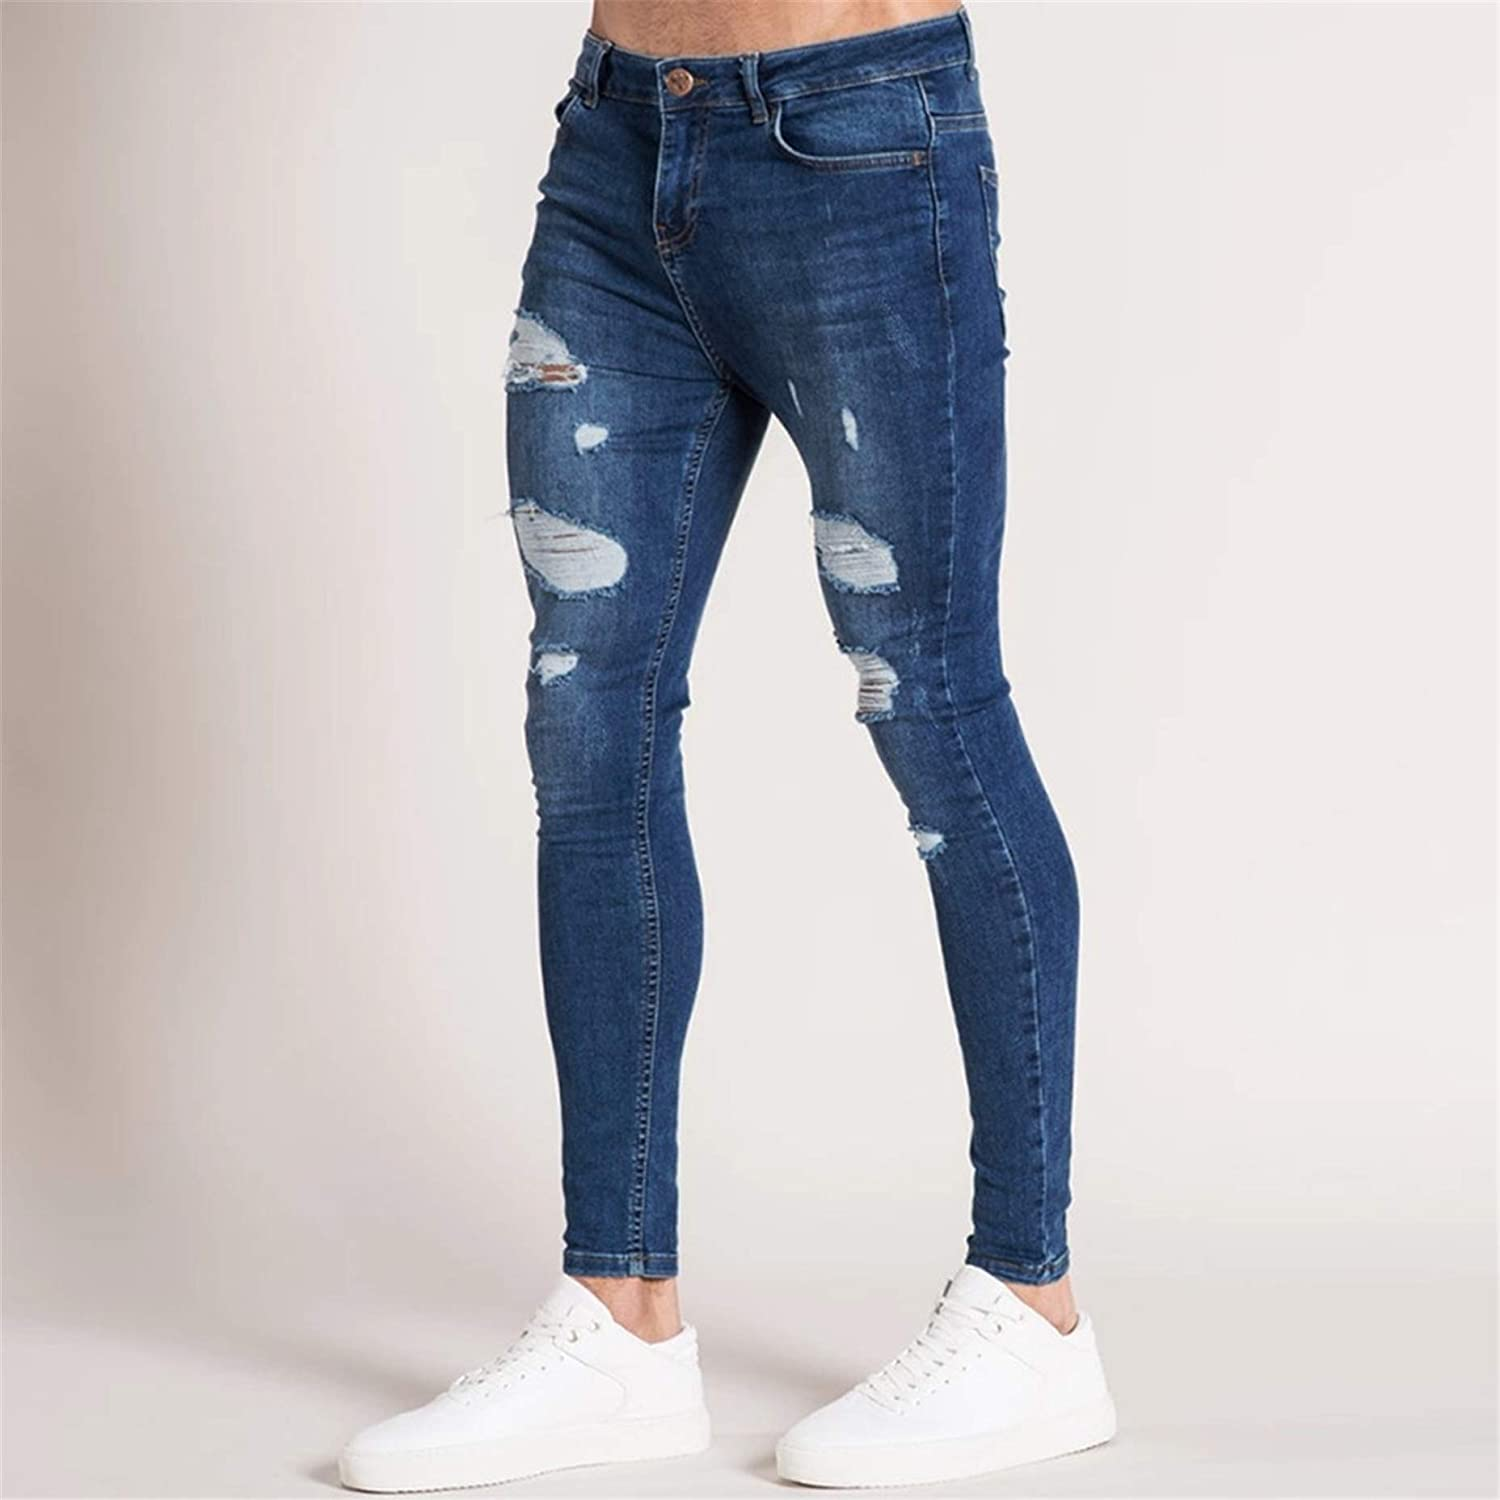 Mens Skinny Ripped Distressed Destroyed Slim Fit Stretch Biker Jeans Teen Boy Fashion Washed Denim Pants with Holes